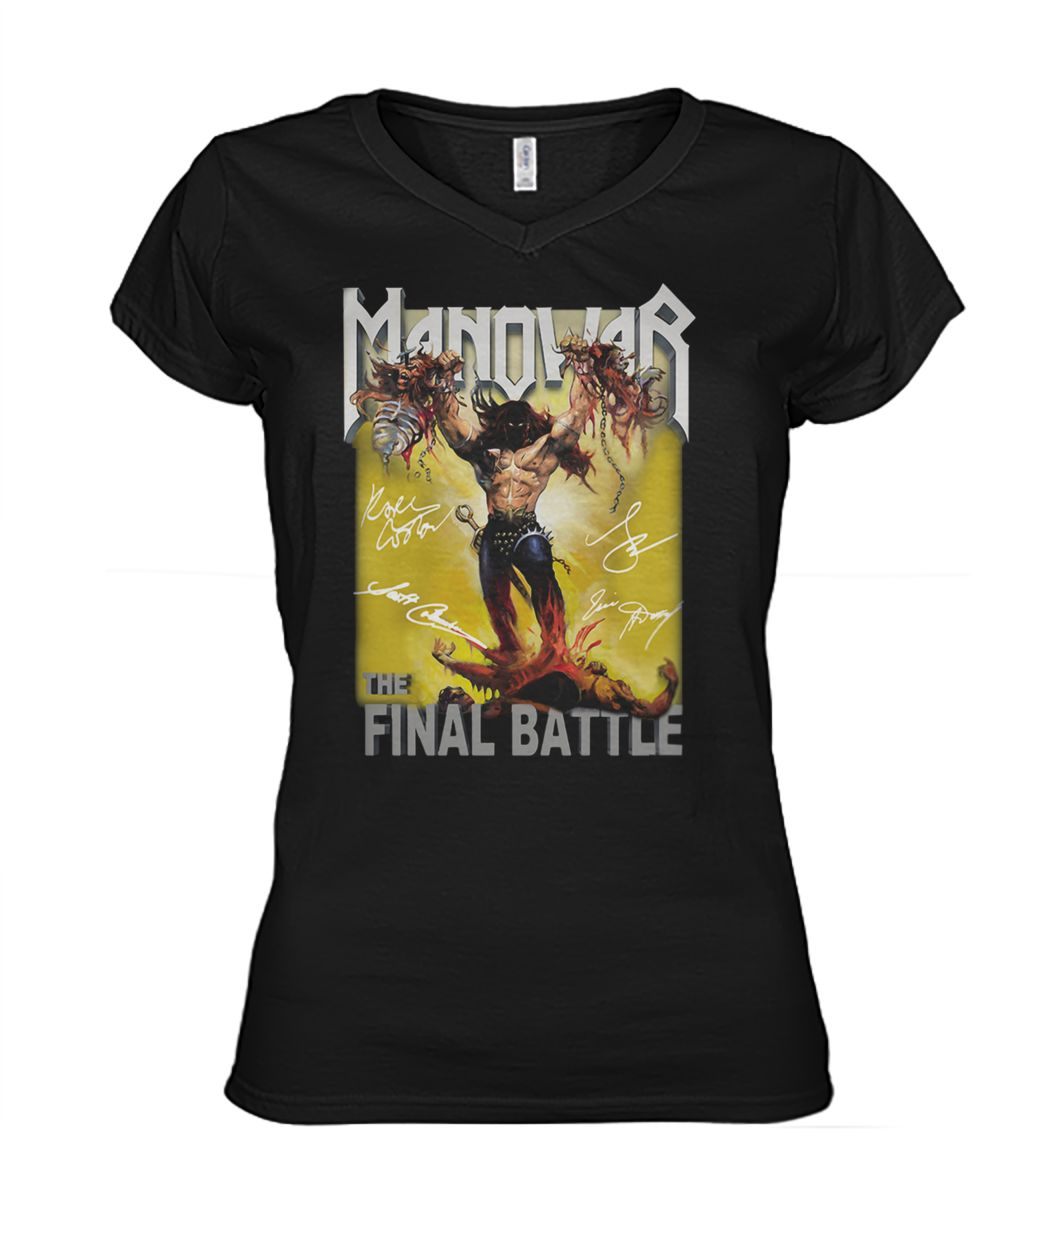 The manowar final battle world tour women's v-neck